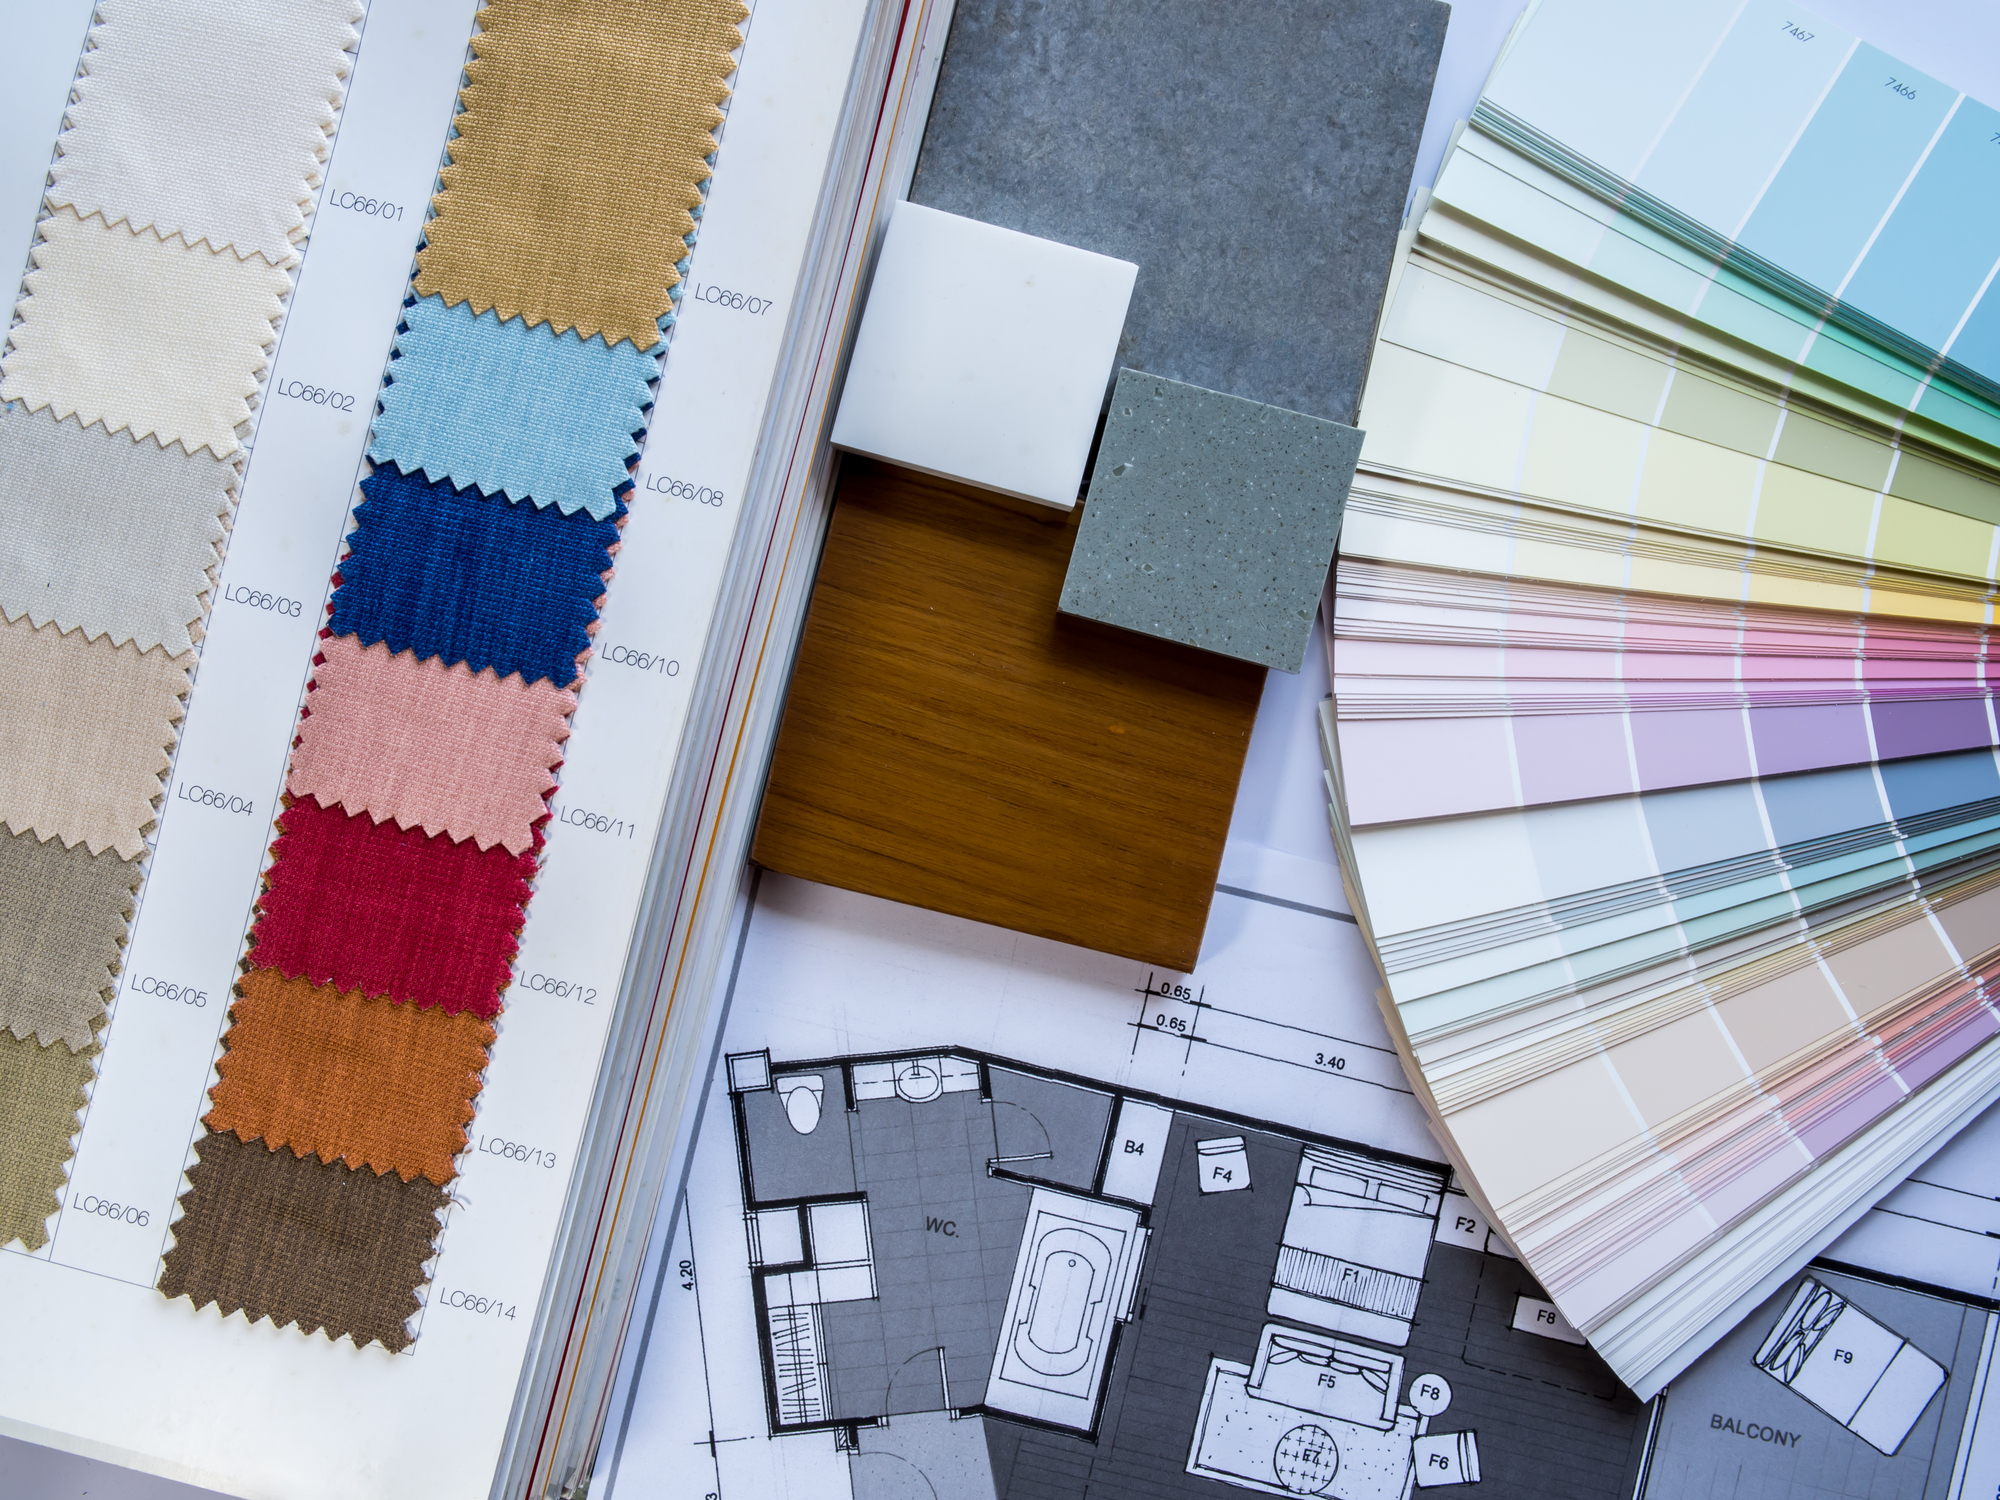 - Utilizing JaniLyn for paint color selection on your commercial or residential project will save you time and money because you will love it the first time. No costly sampling and re-painting needed.